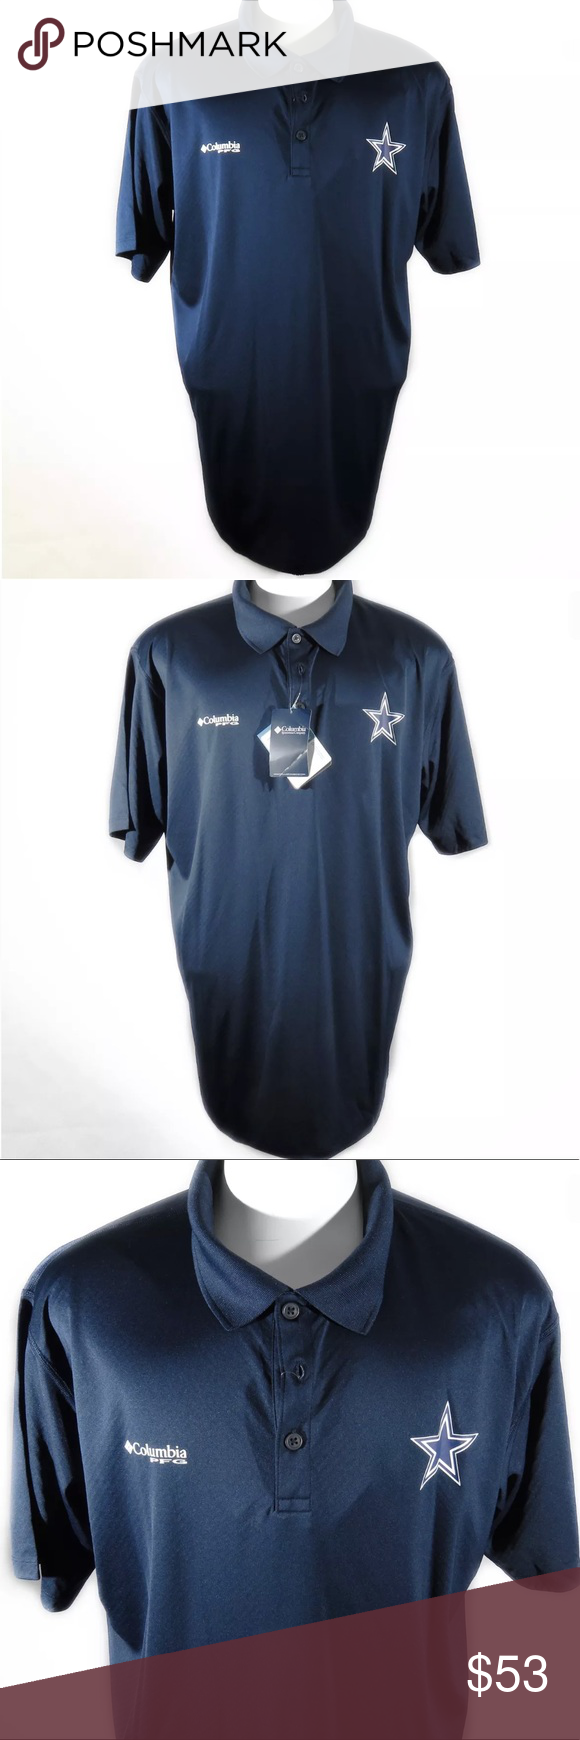 ced3153b75a Columbia Dallas Cowboys PFG Polo Size XL NWT Columbia Dallas Cowboys PFG  Polo (Performance Fishing Gear) Haven't worn this in months and I'm  deciding to ...